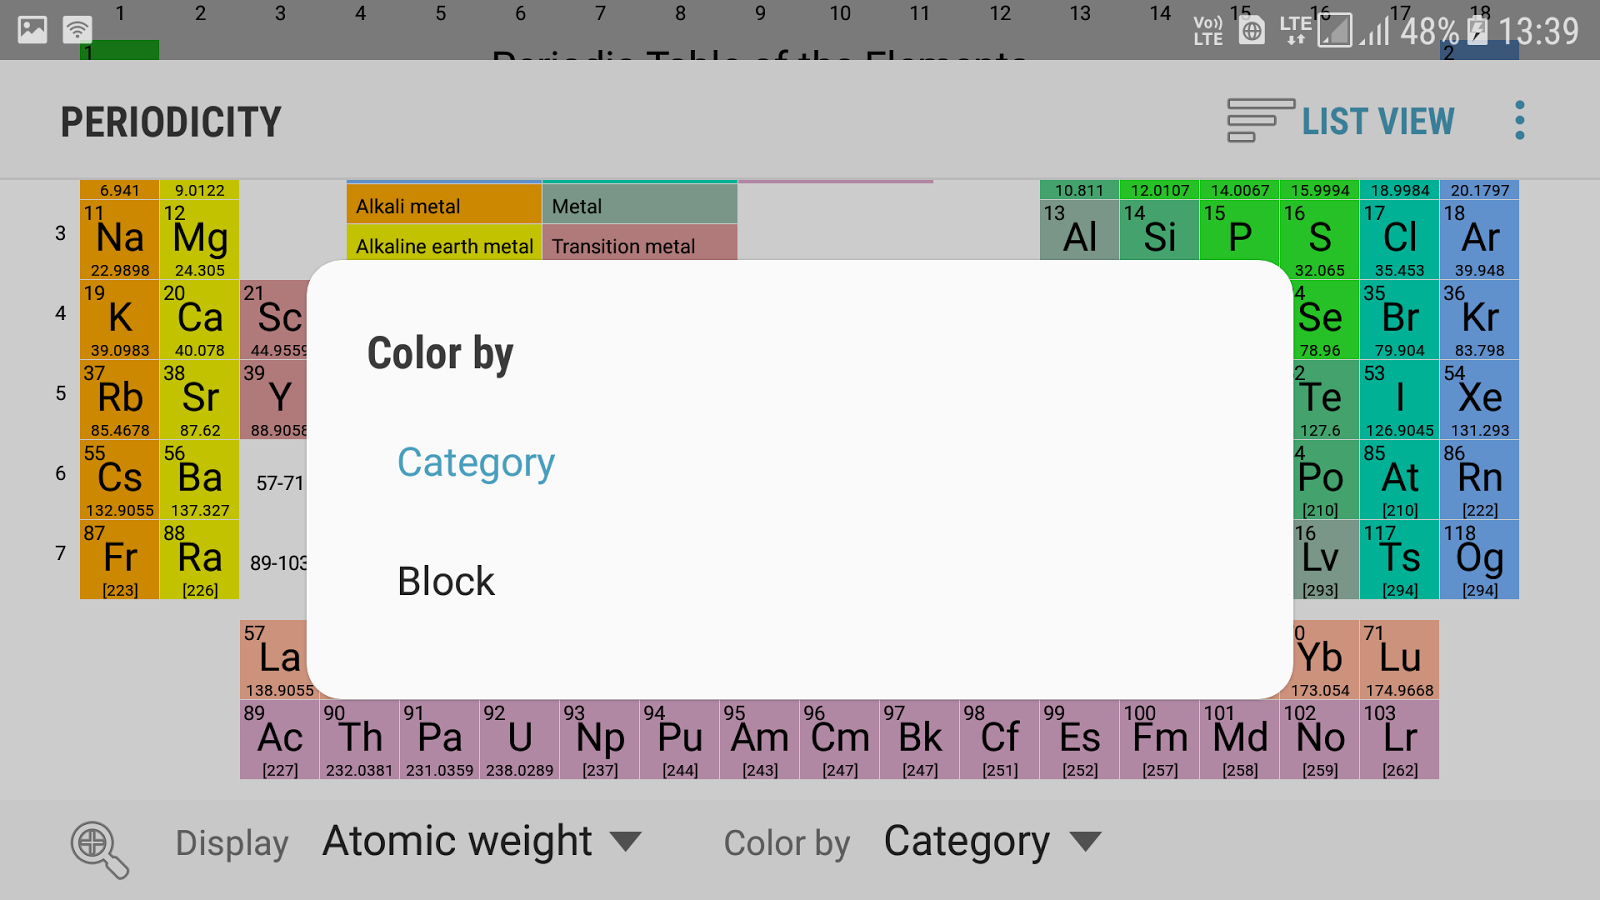 Best periodic table app android gallery periodic table and sample periodic table app for android tablet gallery periodic table and periodicity best periodic table chemistry app urtaz Image collections